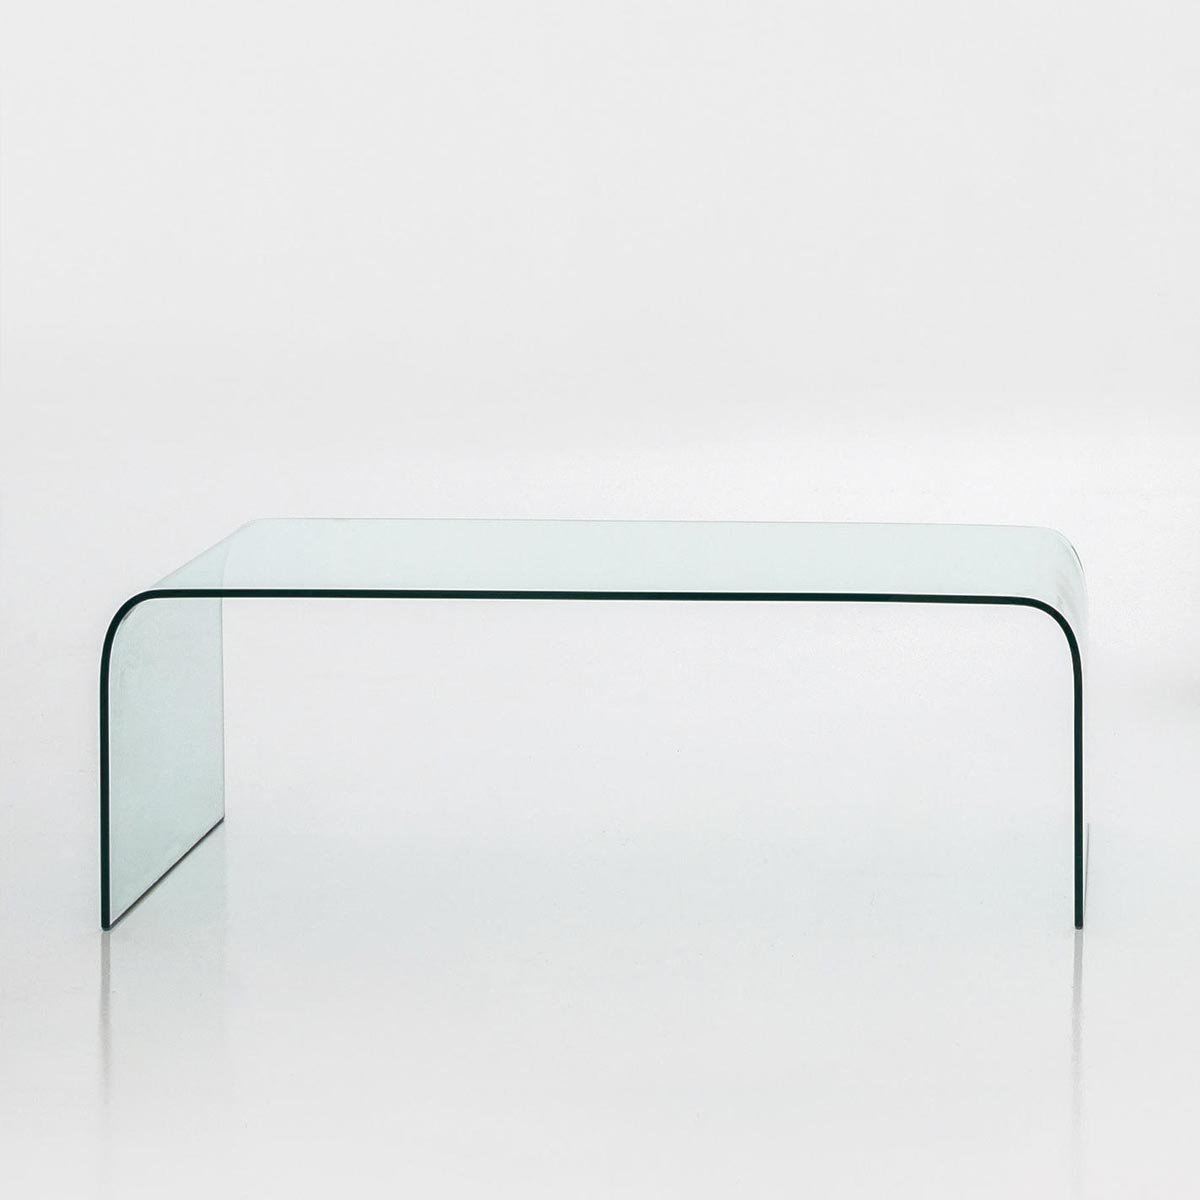 anemone-tonin-casa-curved-glass-table